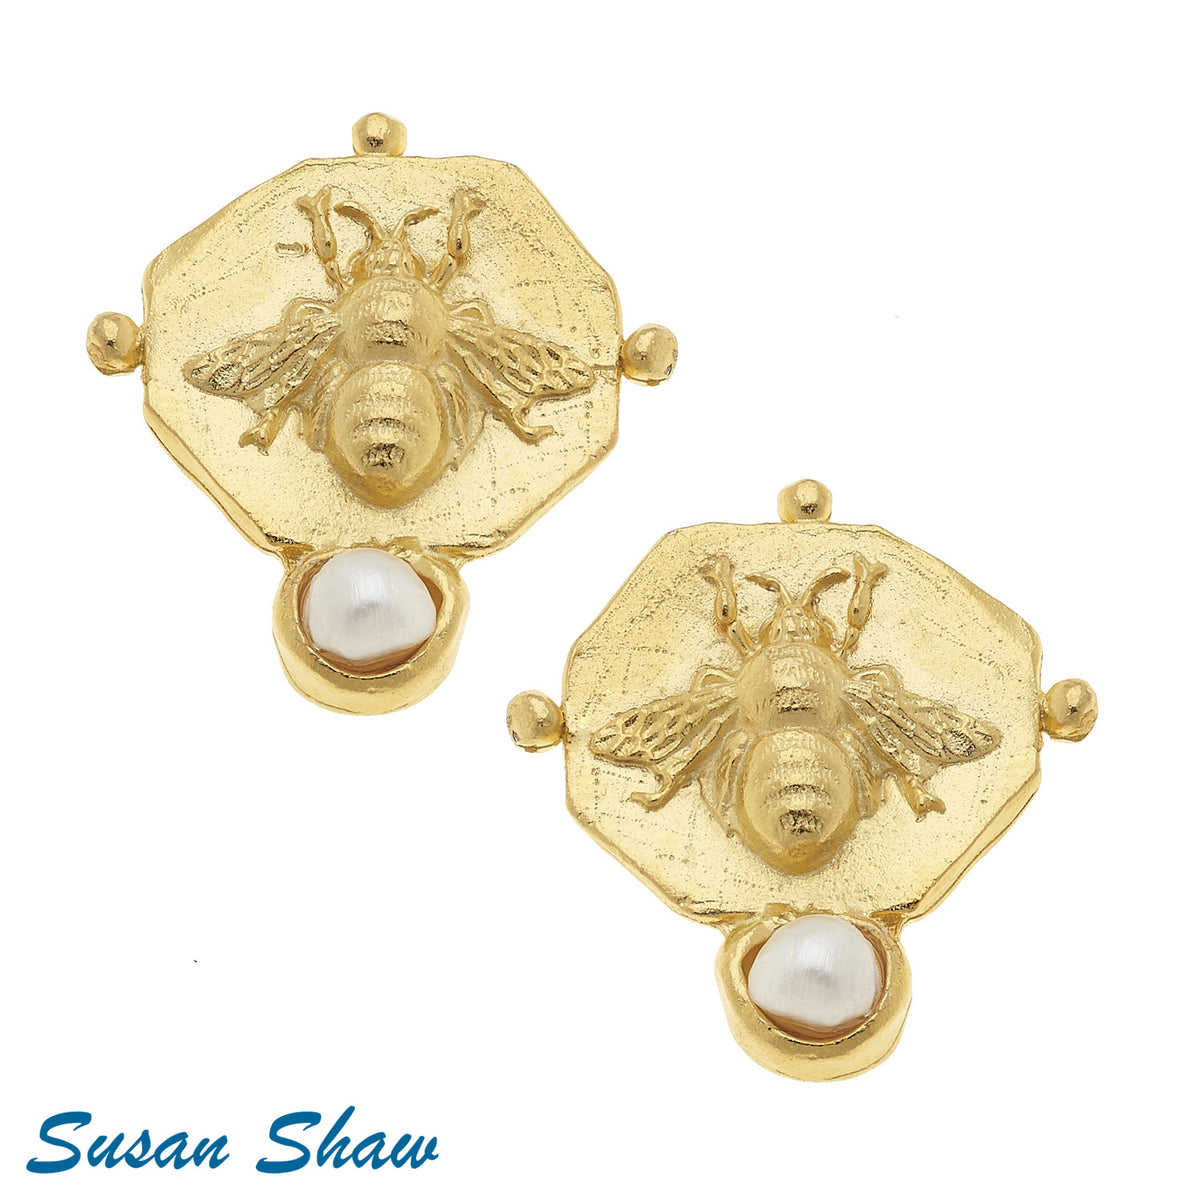 Susan Shaw: Iconic Bee Earrings with Pearls